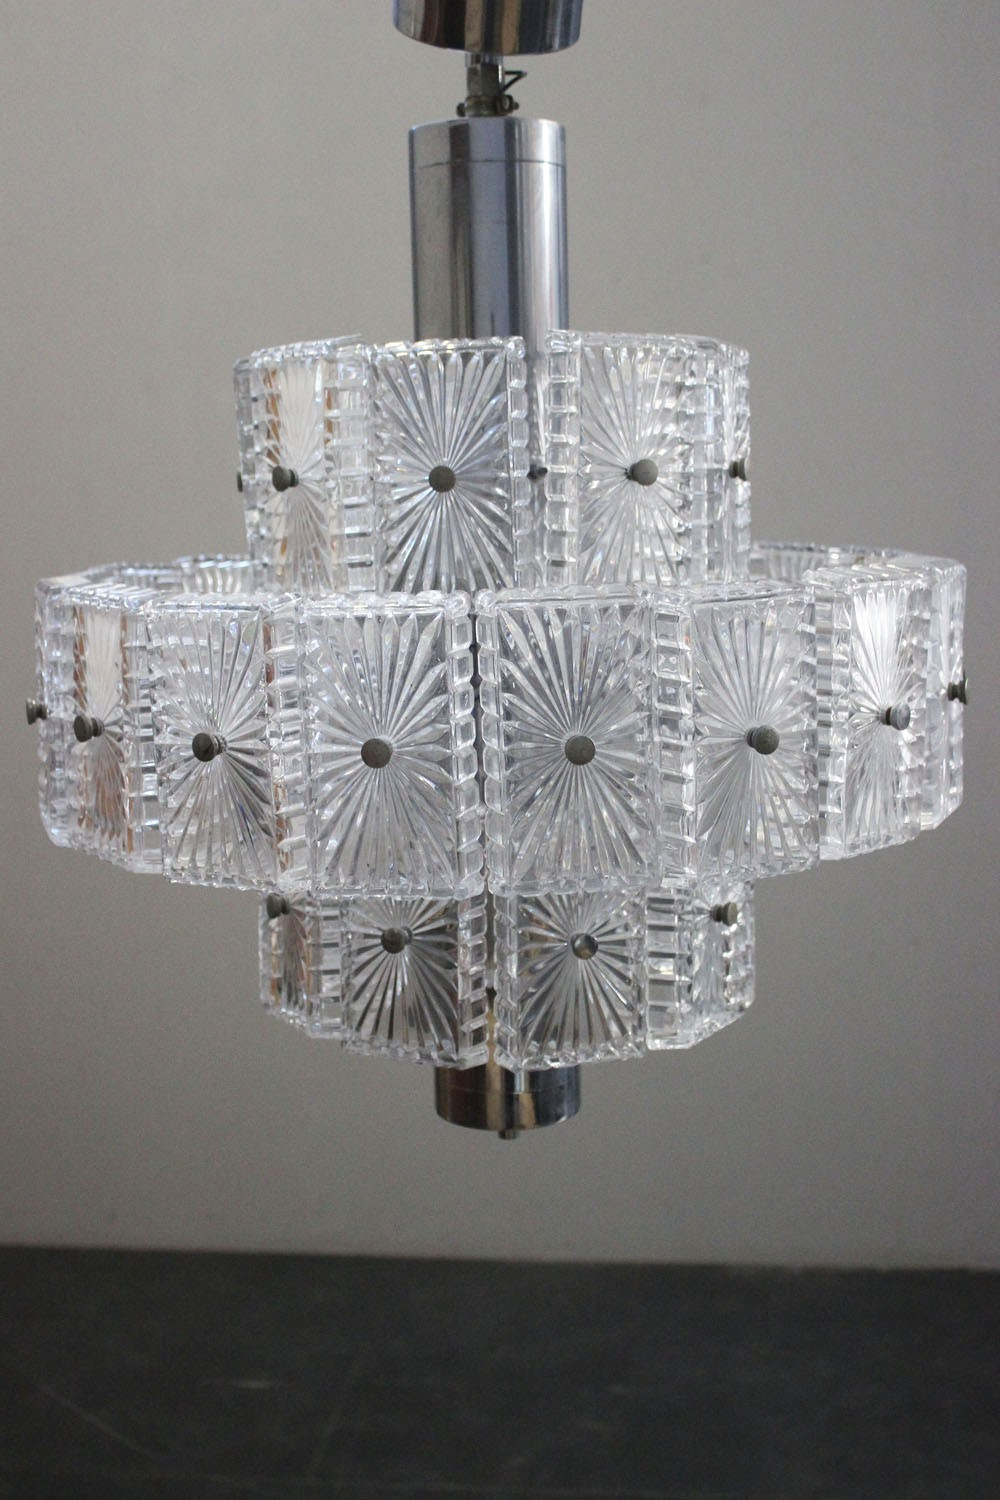 Check out some similar items below! Lampadario Anni 60 70 Marco Polo Antiques Online